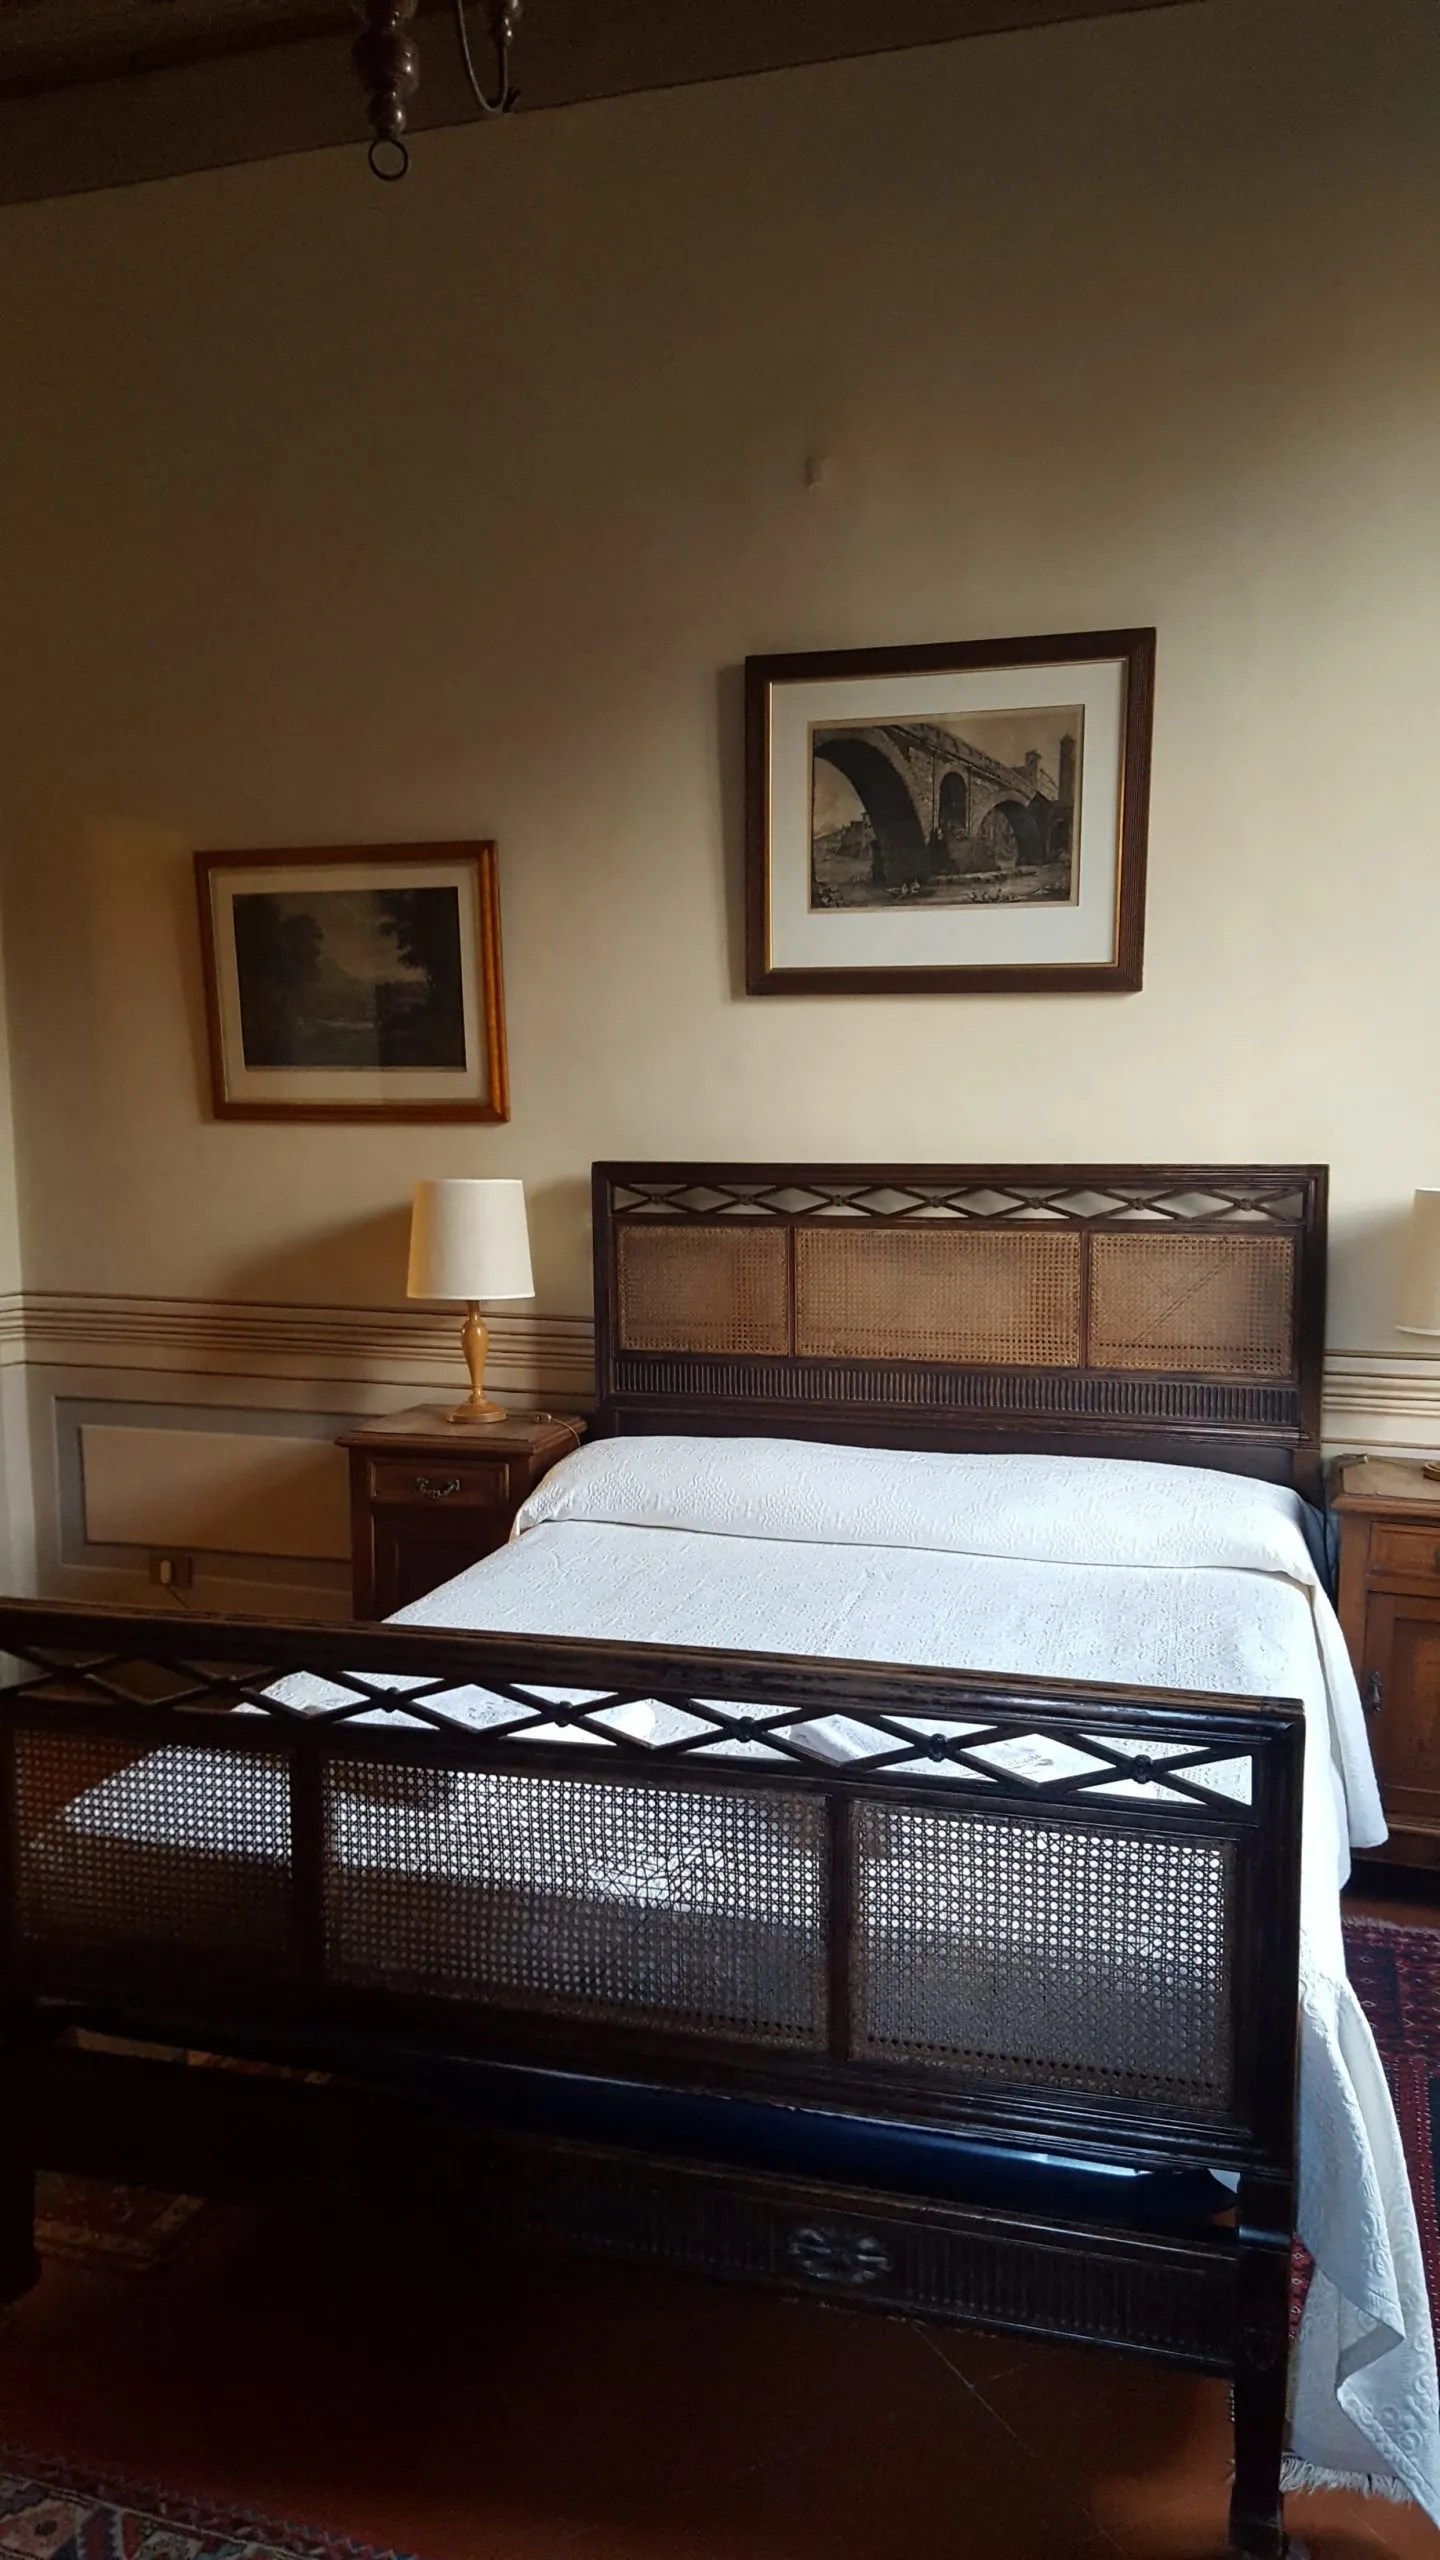 Keats Shelley house bedroom interior with wicker work bed